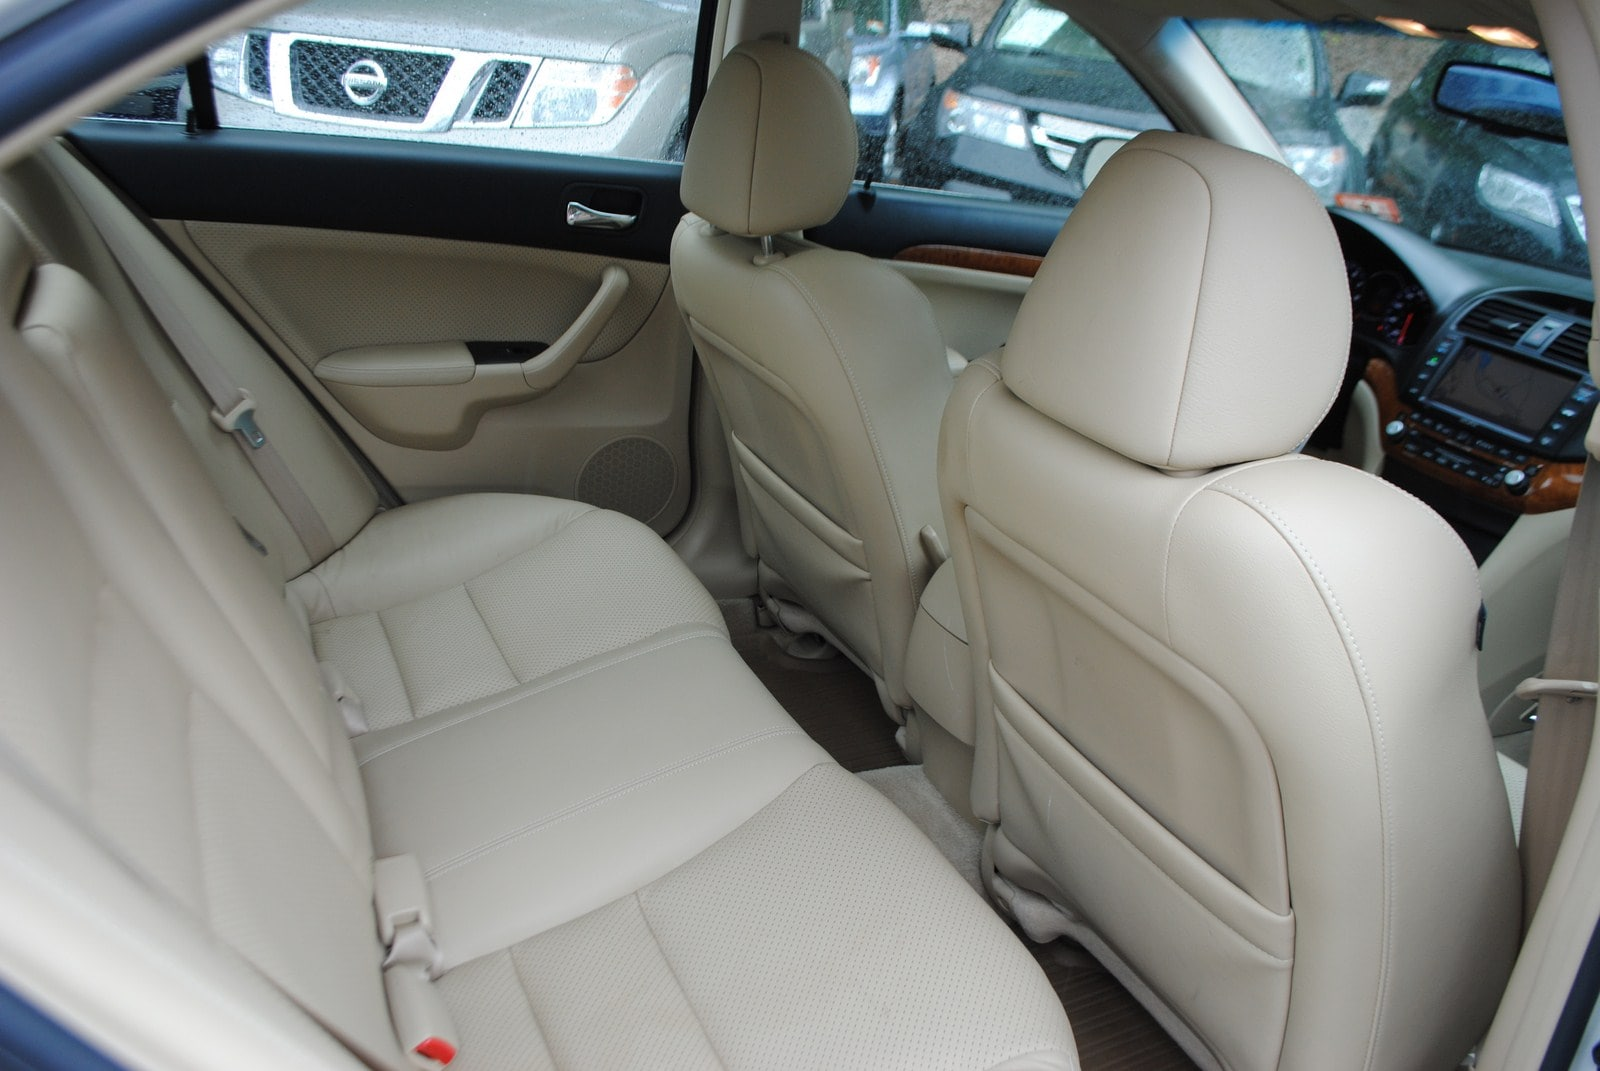 Acura Tsx Seat Cover Manual User Guide Manual That Easytoread - Acura tl seat covers